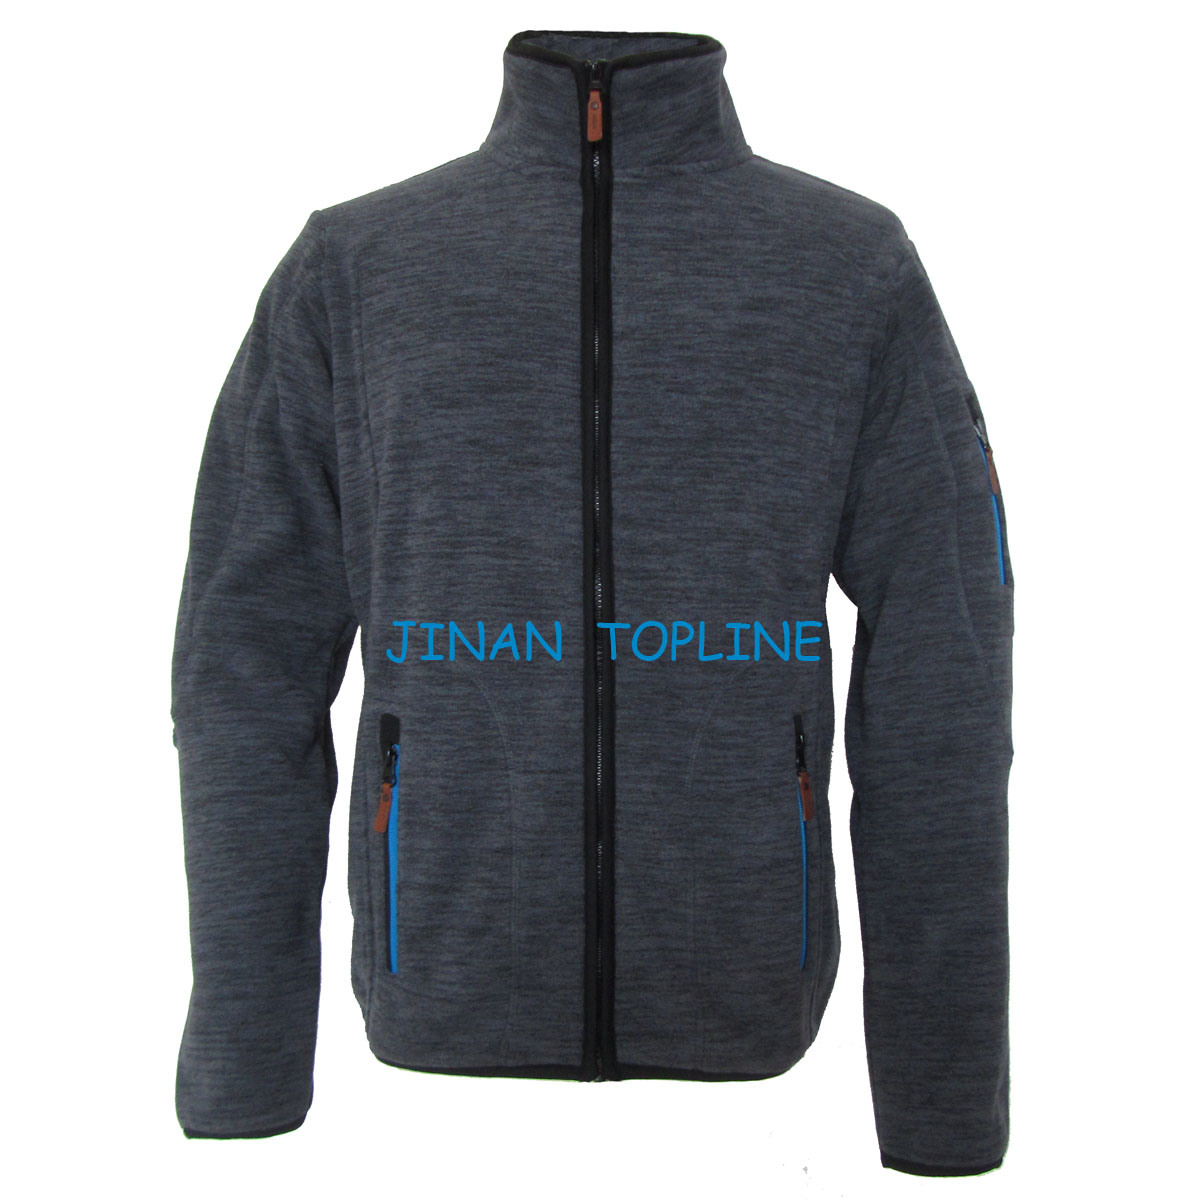 Men Cationic Dyed Polar Fleece Windproof Leisure Jacket